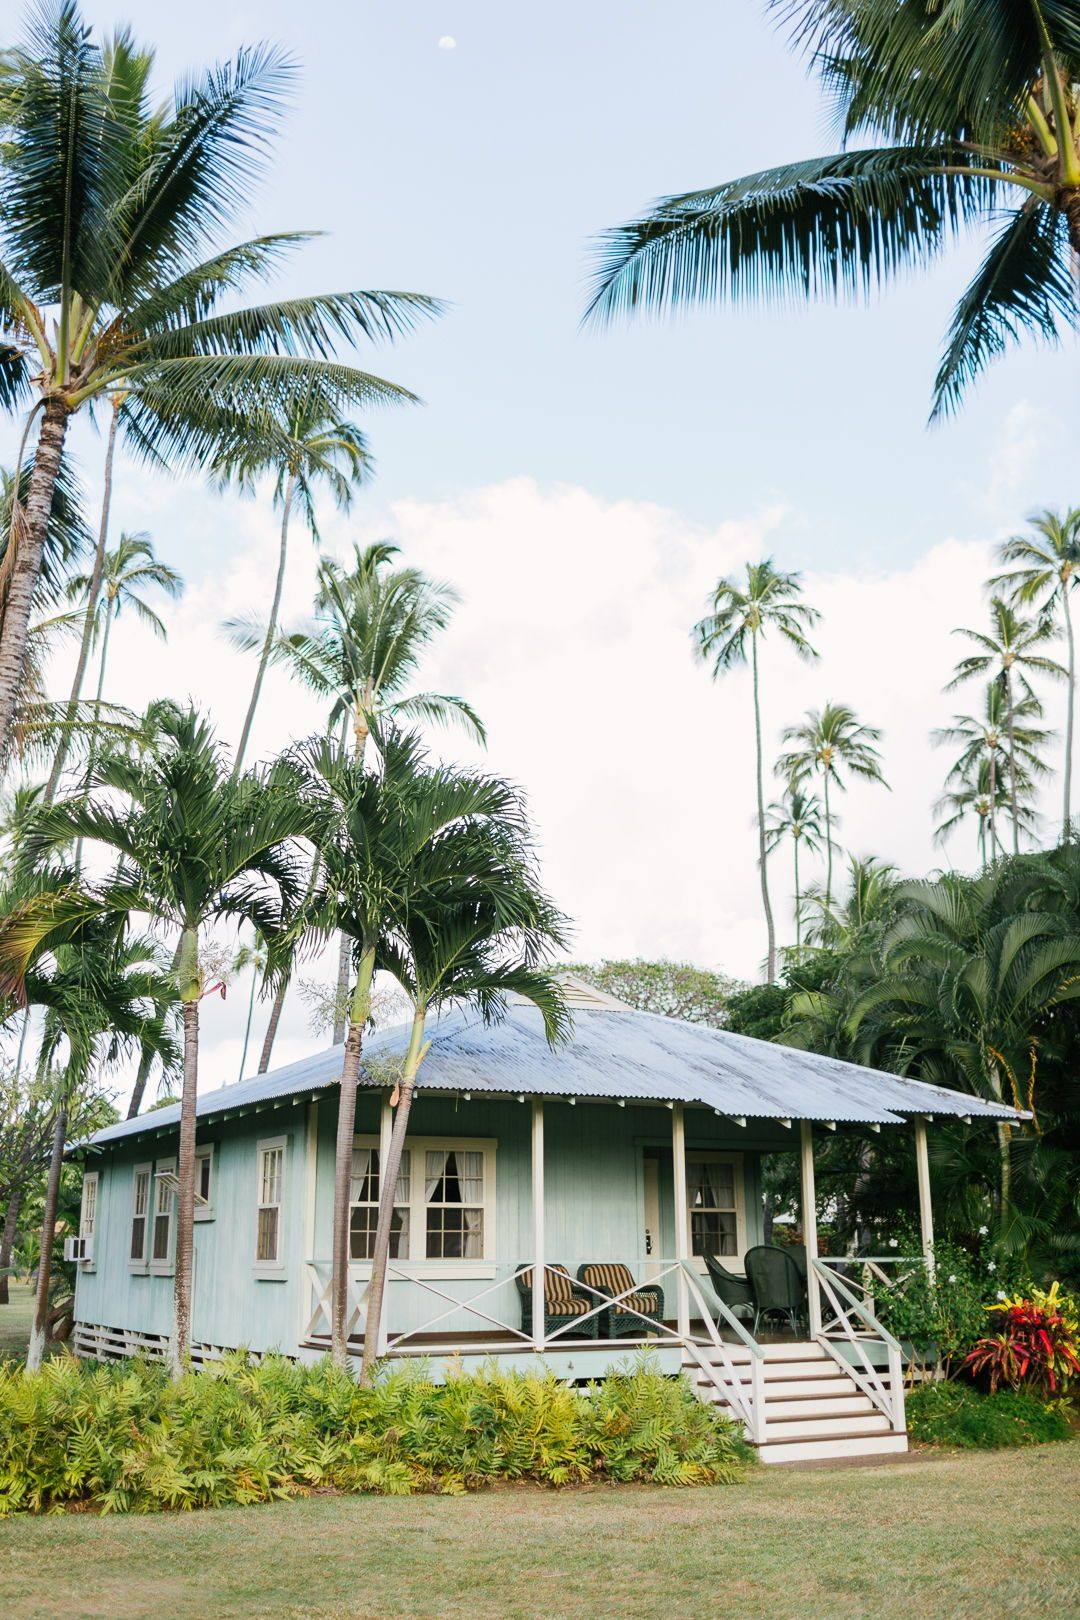 Waimea Plantation Cottages on Kauai, Hawaii in 2019